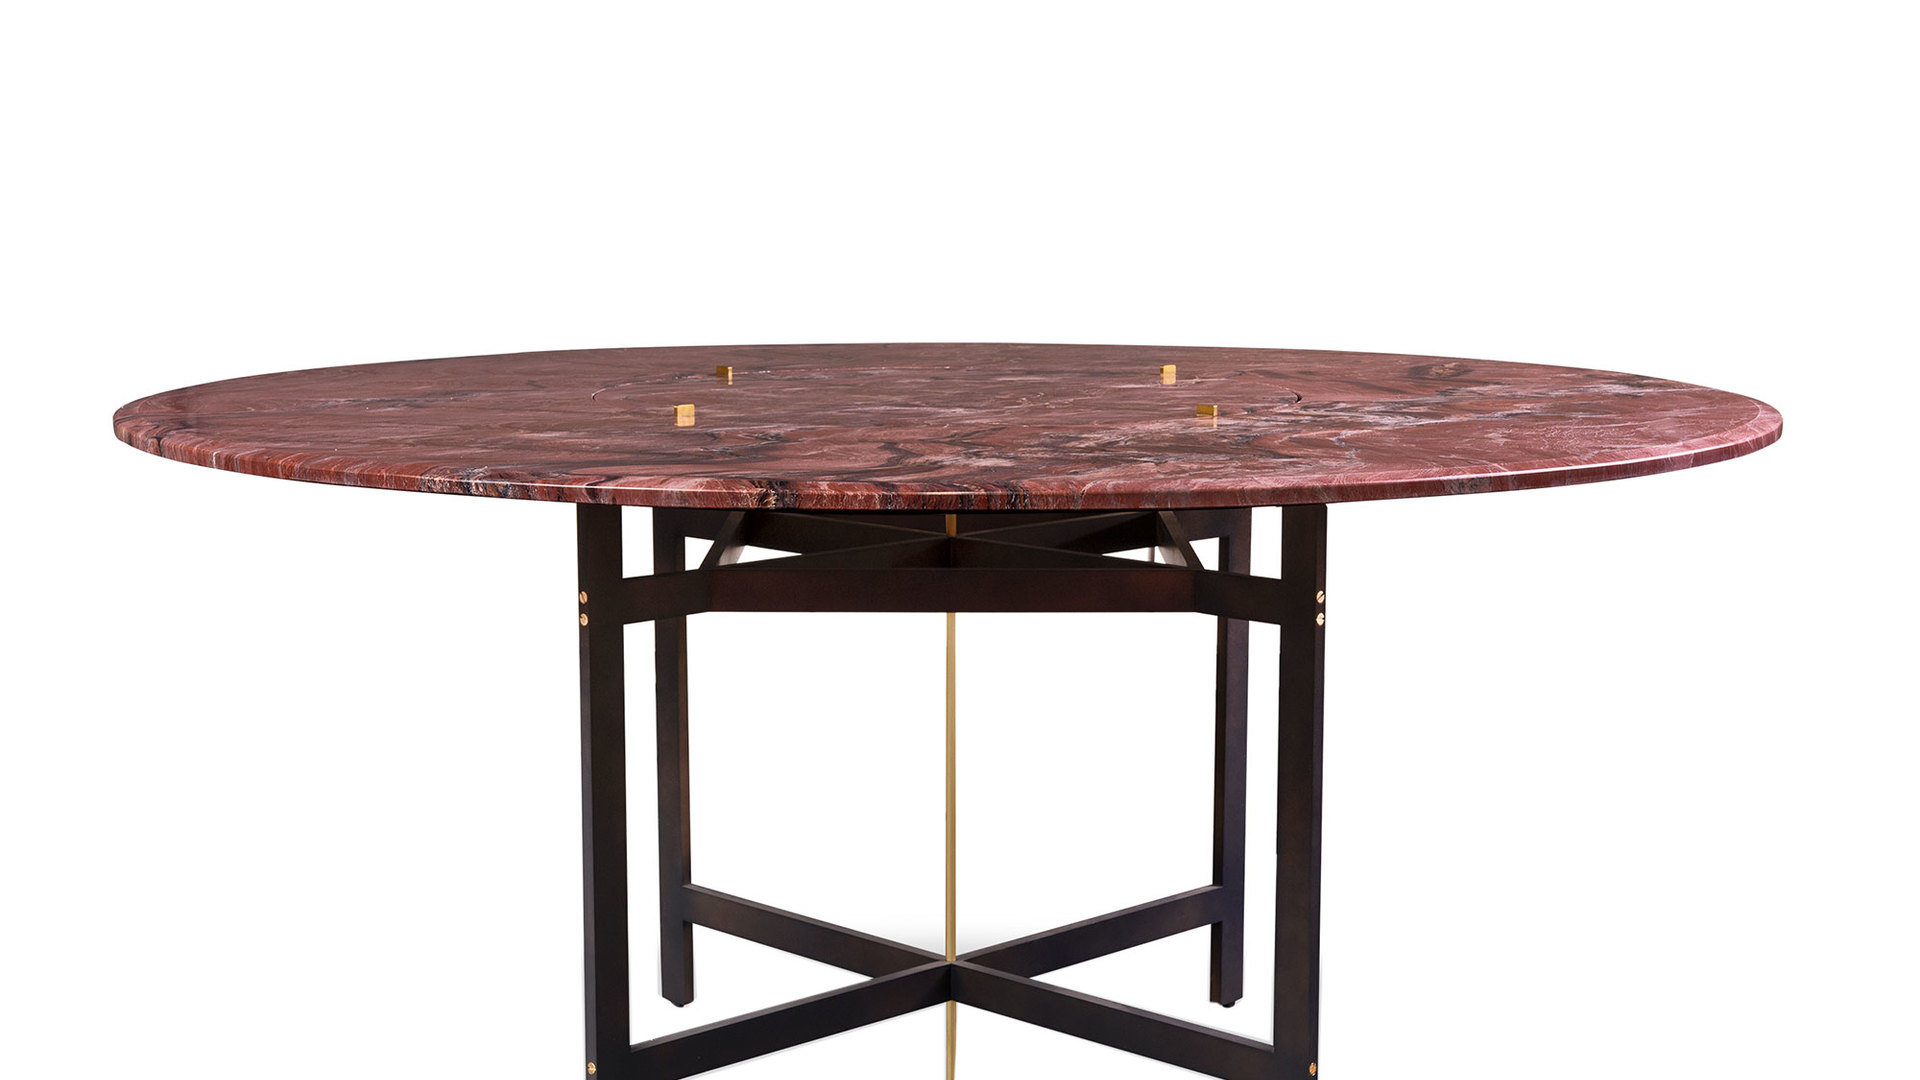 Baxter Place round table.jpg